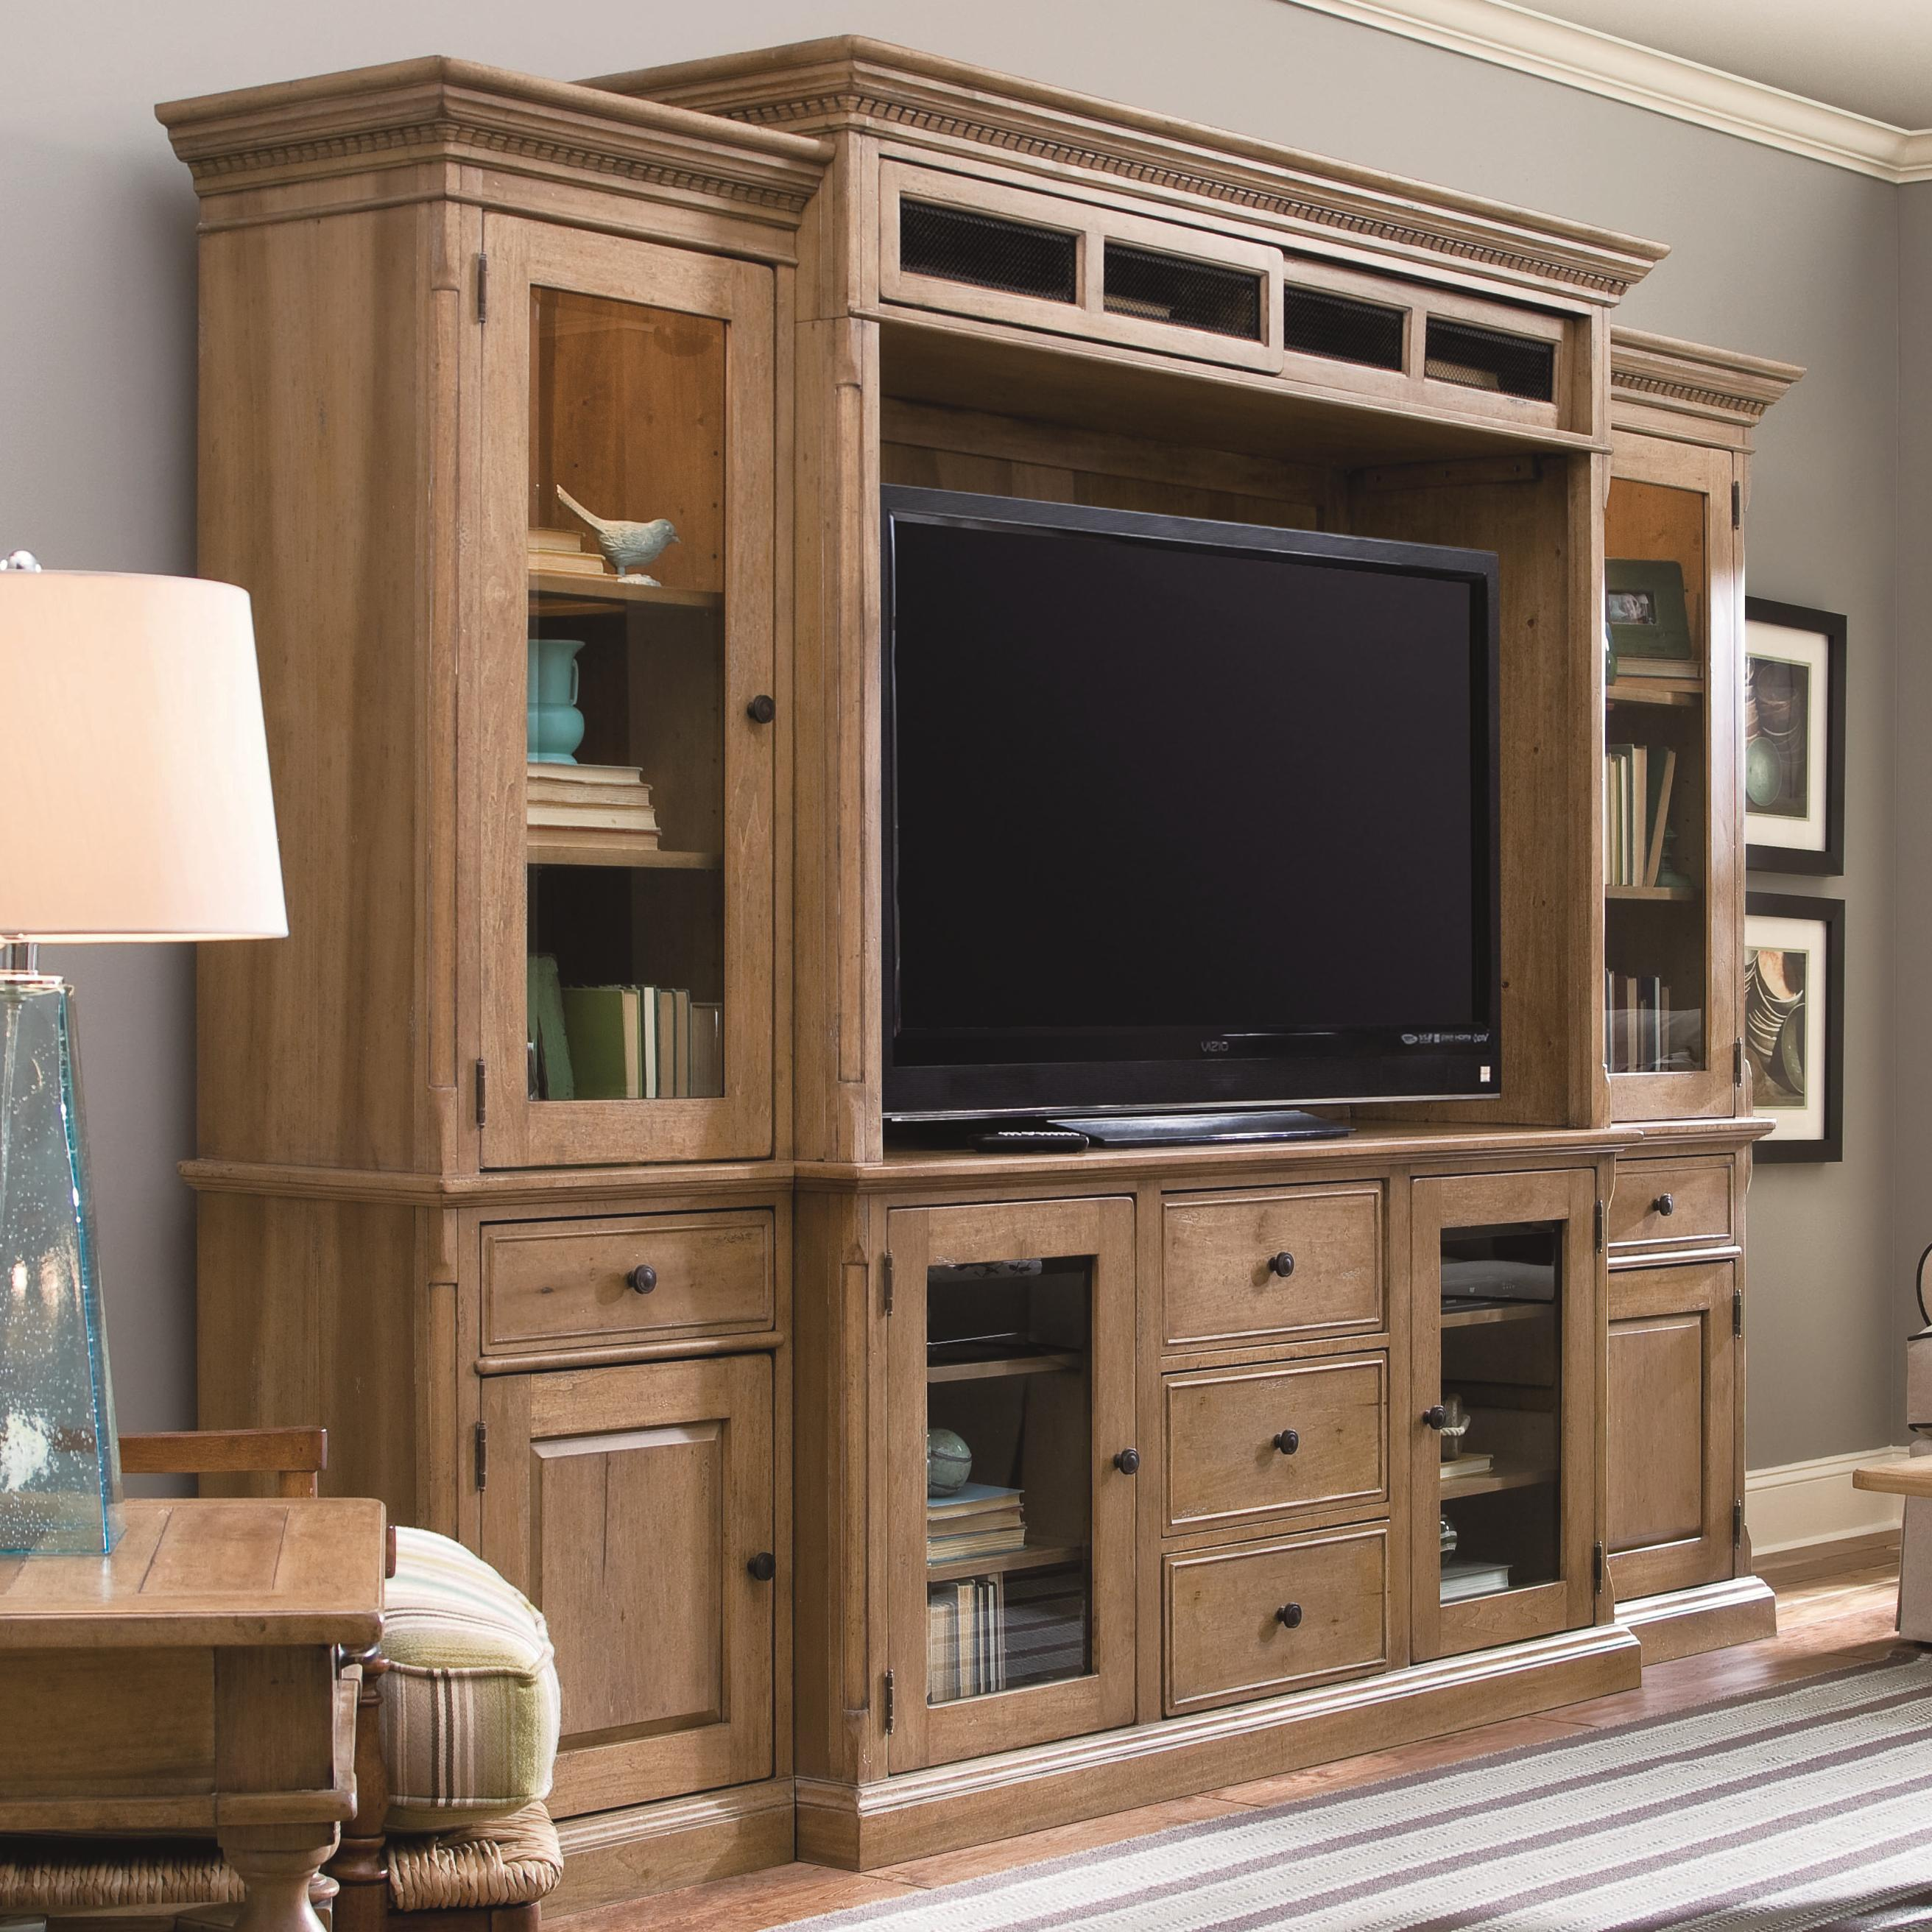 Paula deen by universal down home 192966he entertainment console wall unit baer 39 s furniture for Wall units for living room online